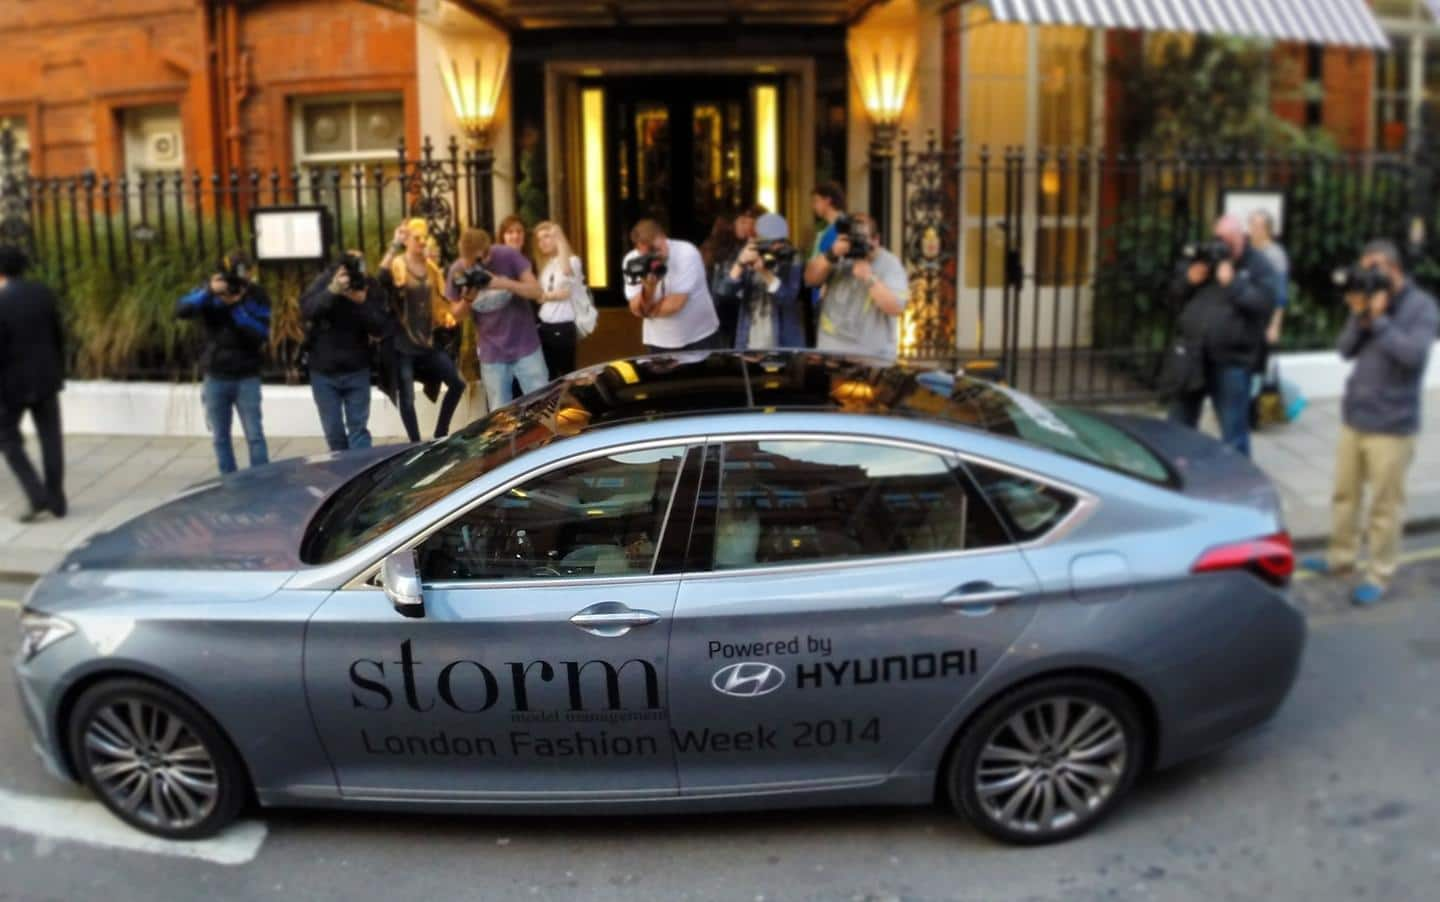 ALL-NEW HYUNDAI GENESIS STORMS LONDON FASHION WEEK 2014